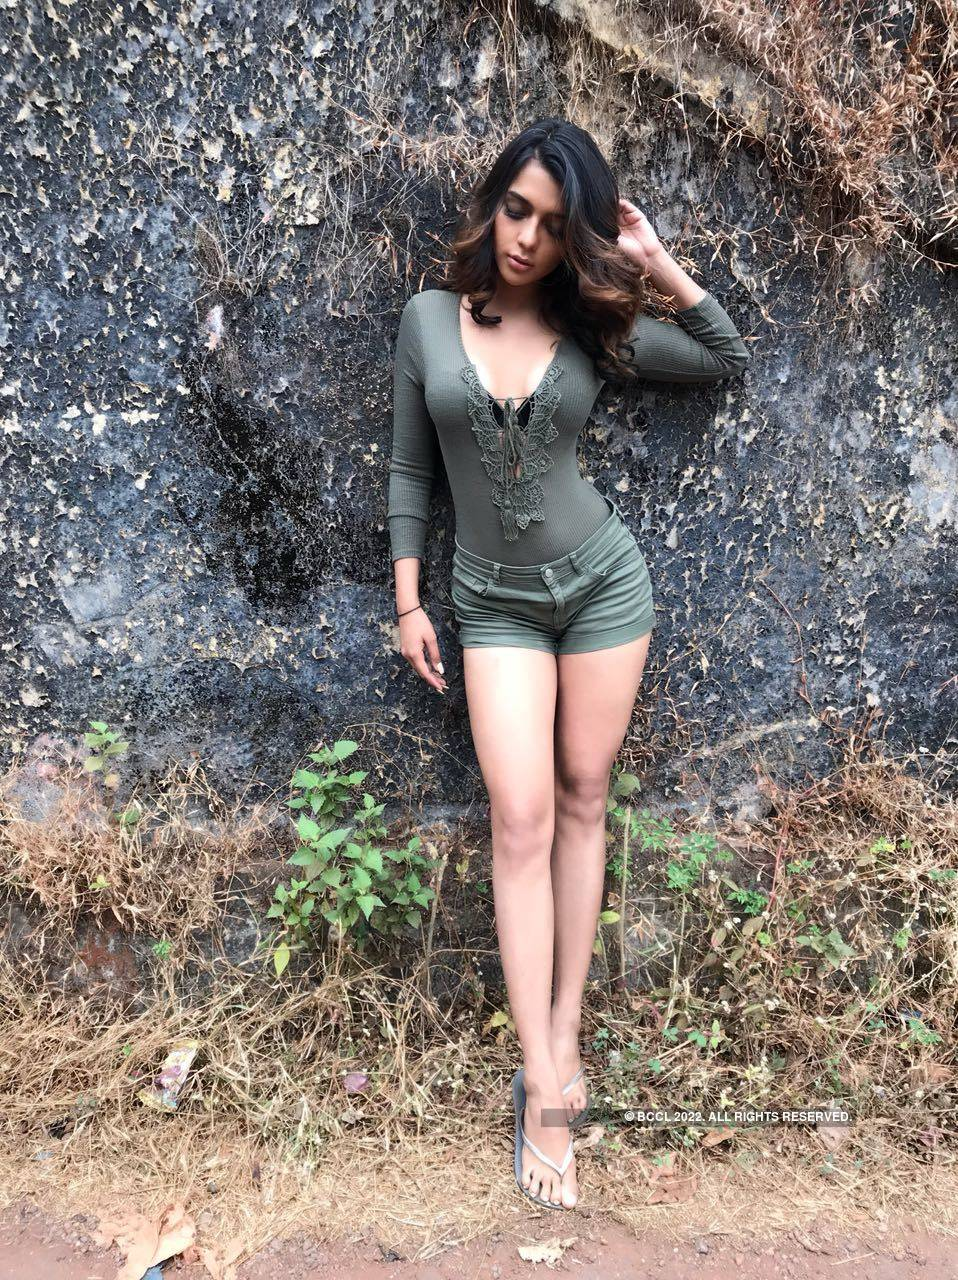 Ruhi Singh is all set to star in an action film